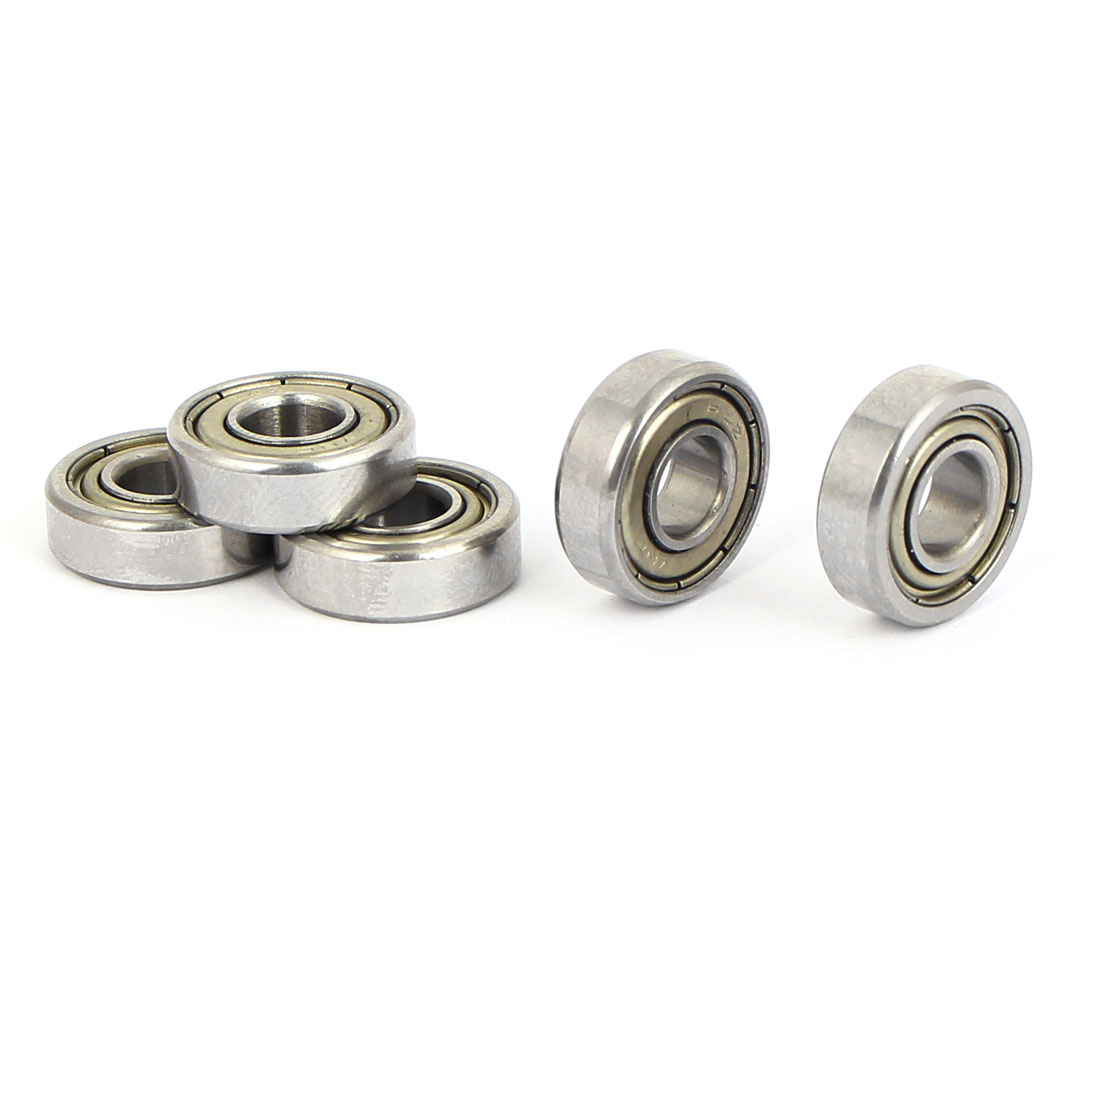 6mm Inside Dia Pressed Steel Cage Sealed Deep Groove Ball Wheel Bearings 5PCS